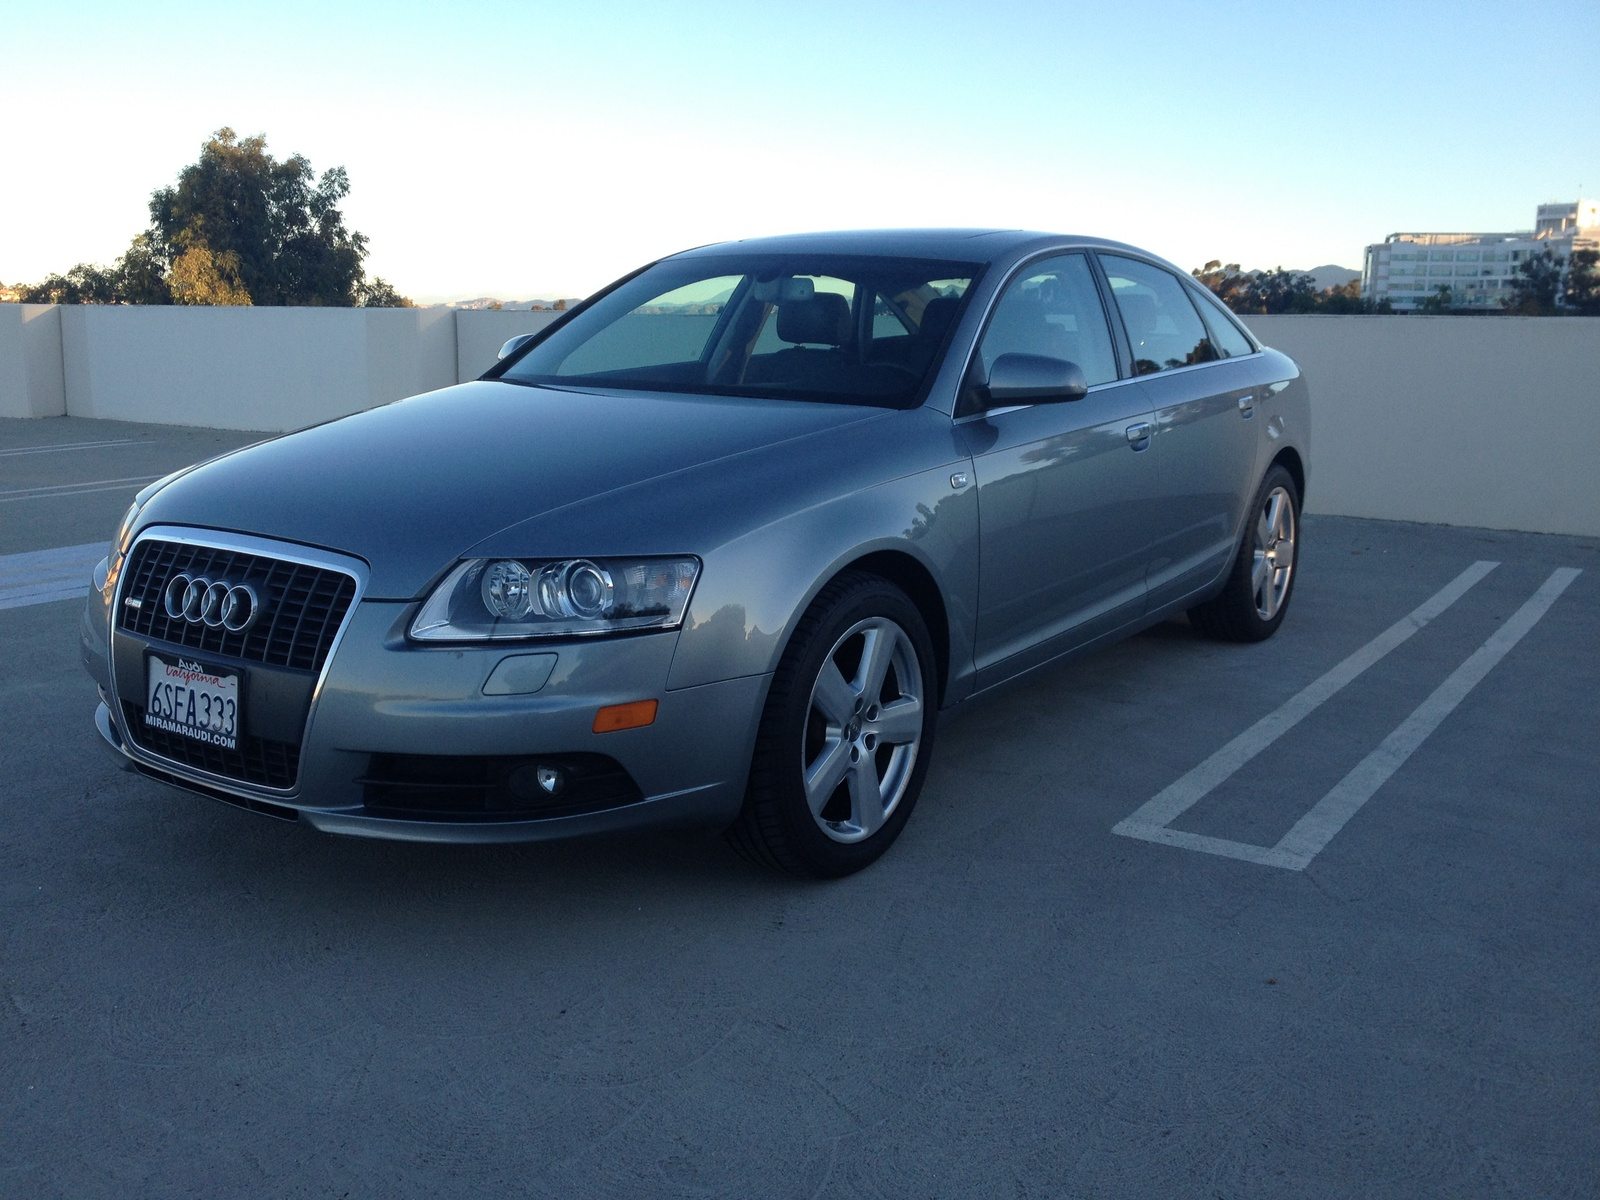 Audi a6 2008 0 to 60 11